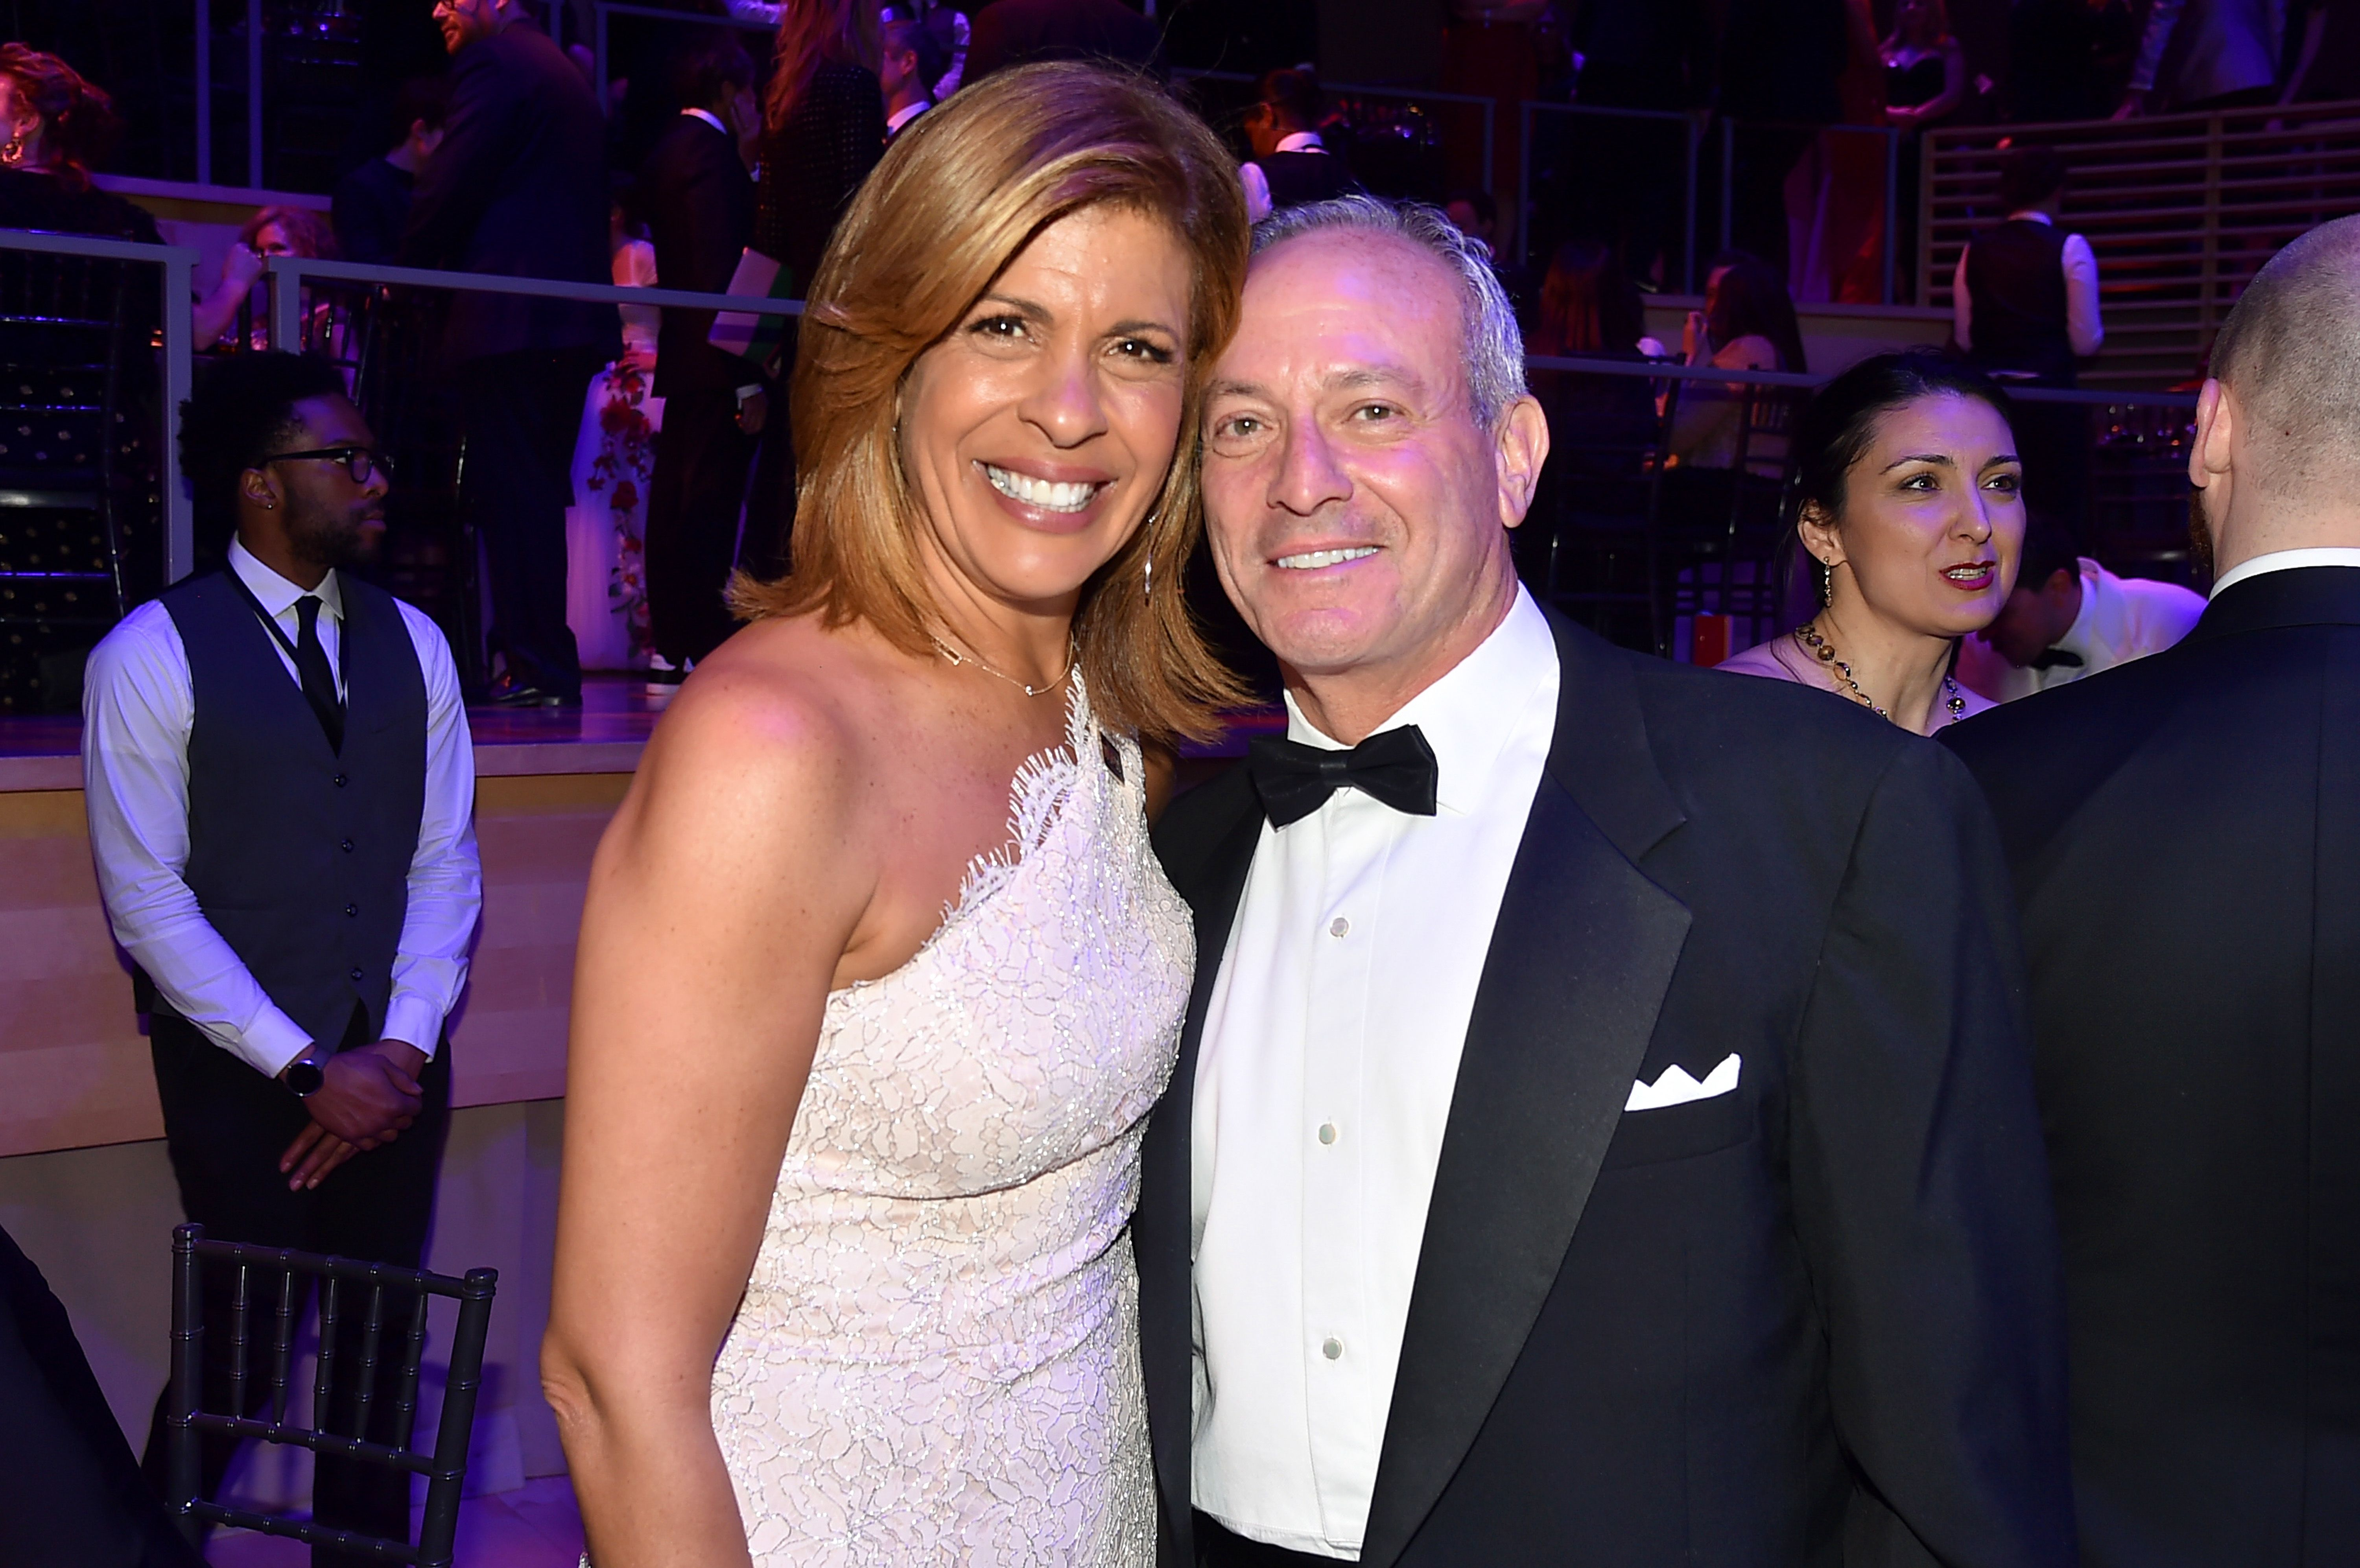 Hoda Kotband Joel Schiffman atthe TIME 100 Gala at Jazz at Lincoln Center on April 24, 2018 in New York City | Photo:Patrick McMullan/Getty Images